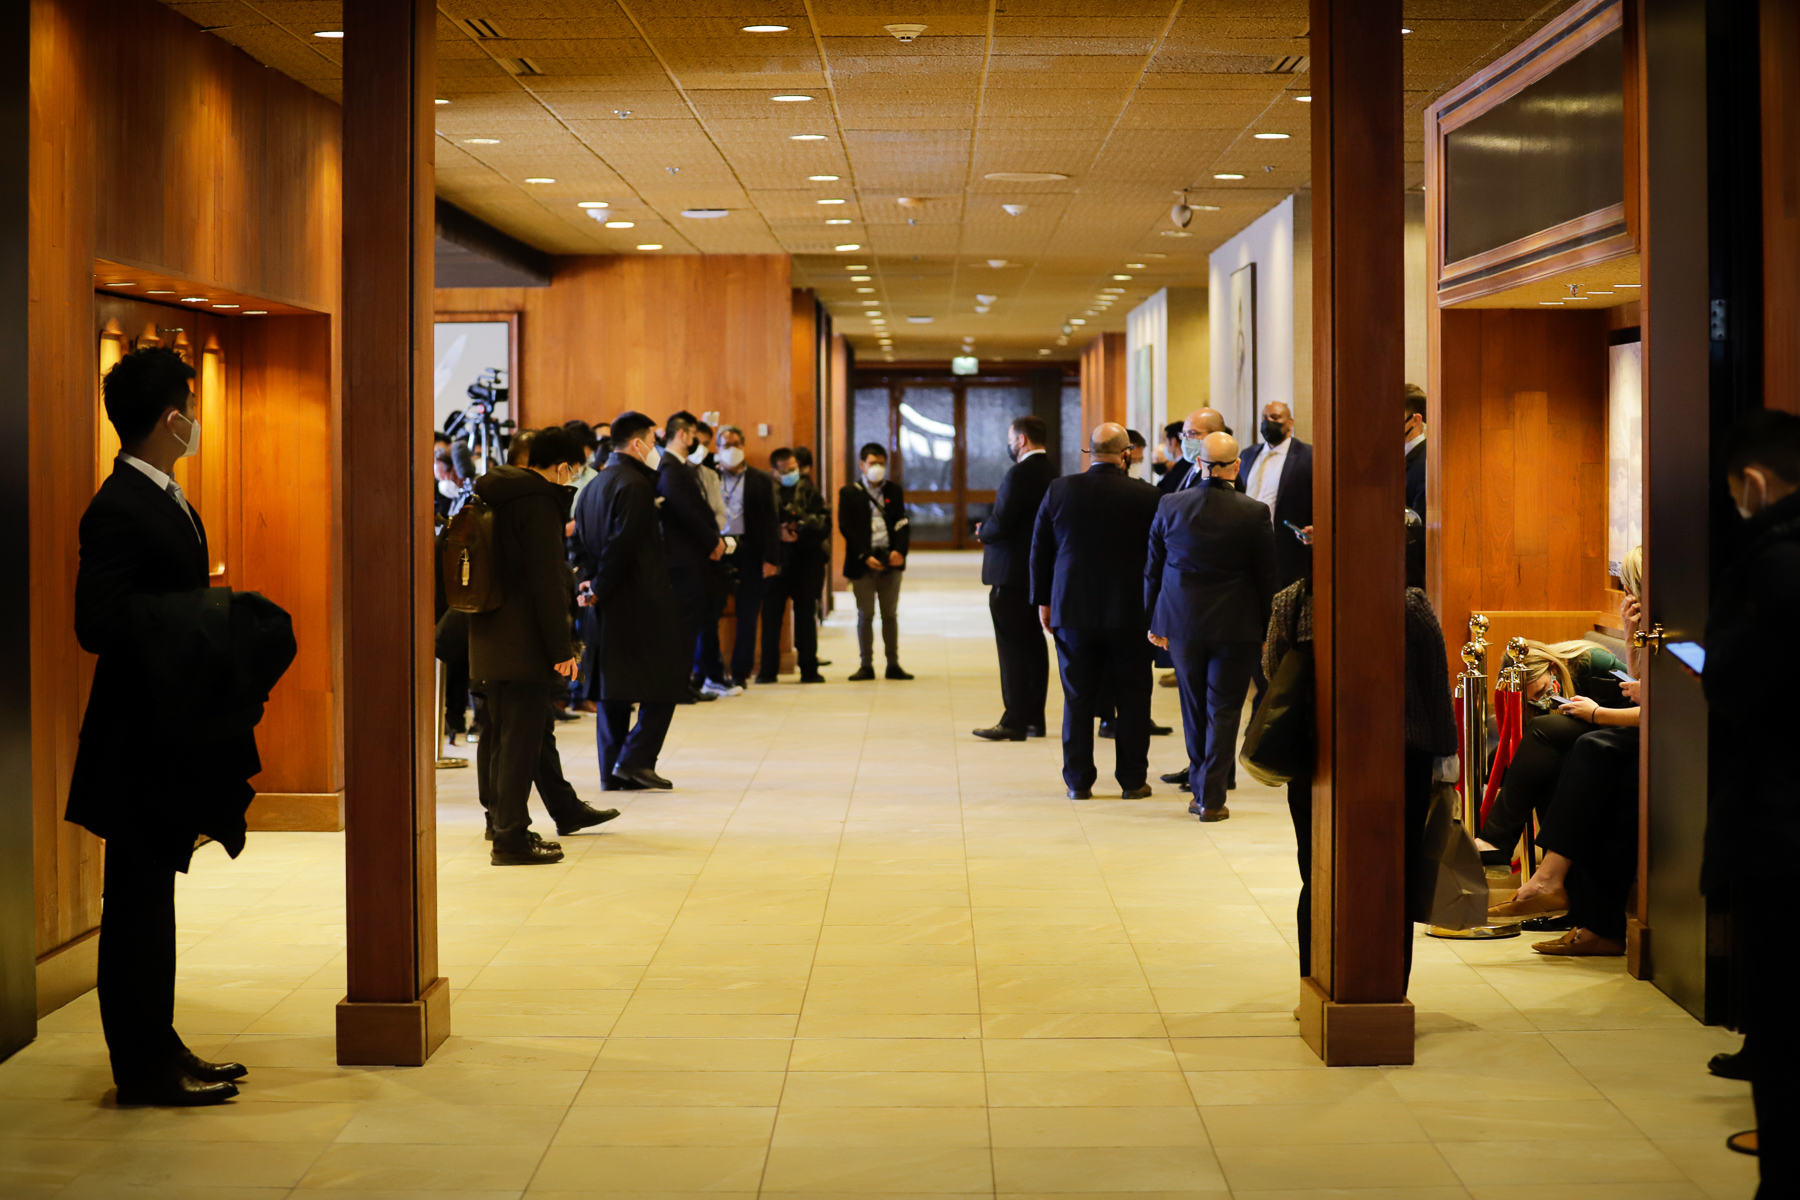 people withs masks on and mostly wearing suits in a hotel hallway